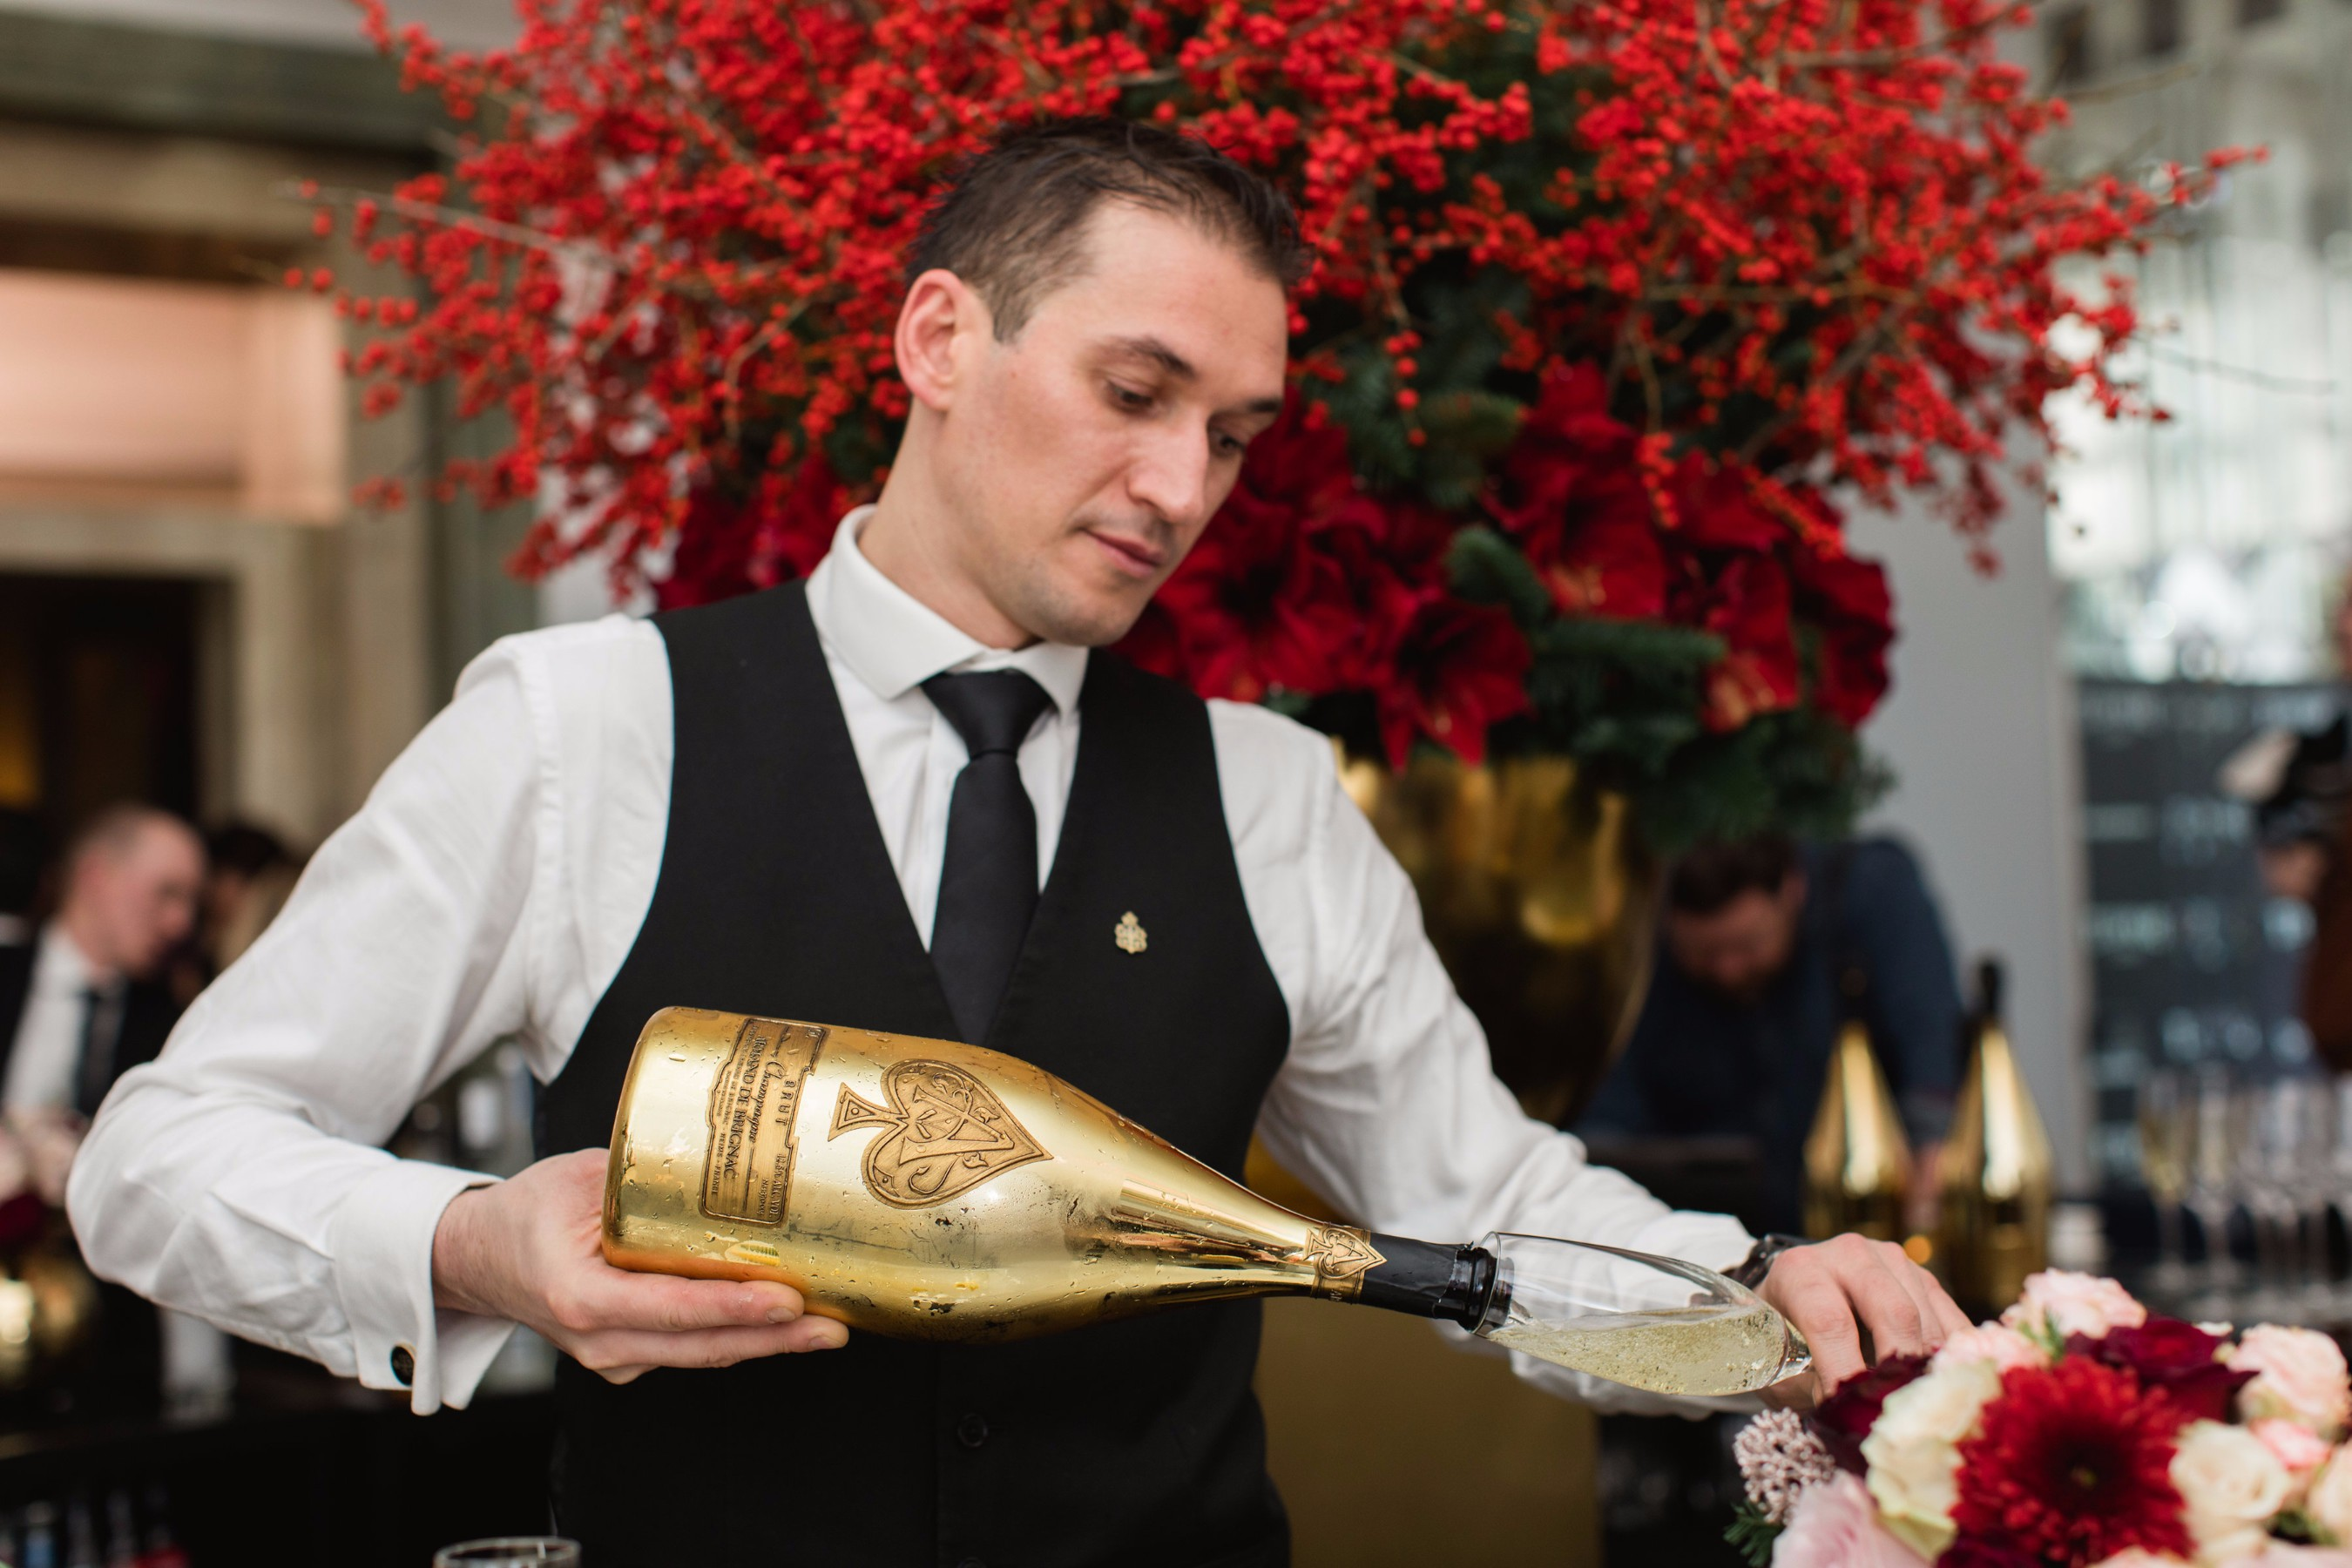 Inside The 2017 Brilliant Is Beautiful Gala at Claridge's, London - Armand de Brignac Champagne